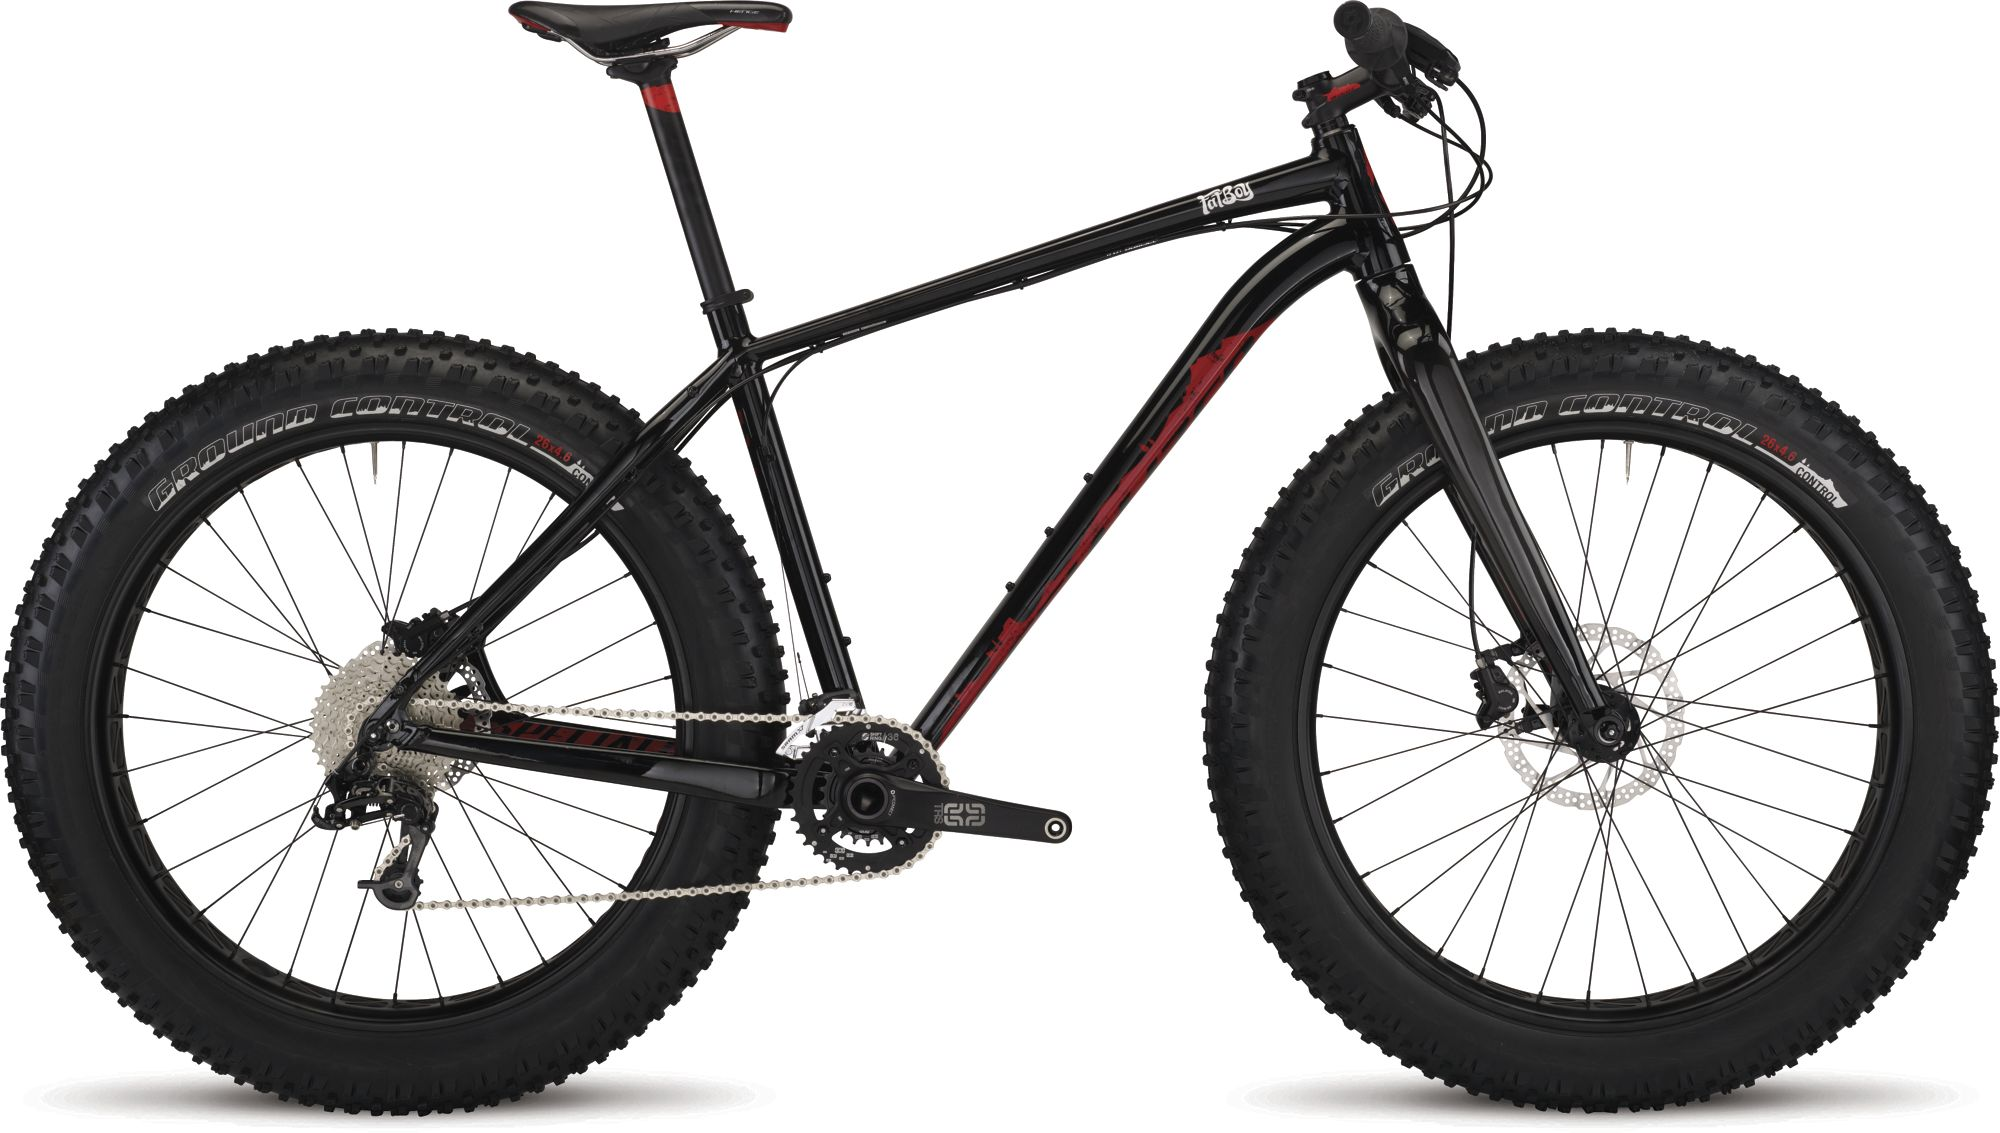 Specialized Fatboy Expert 2015 Review The Bike List